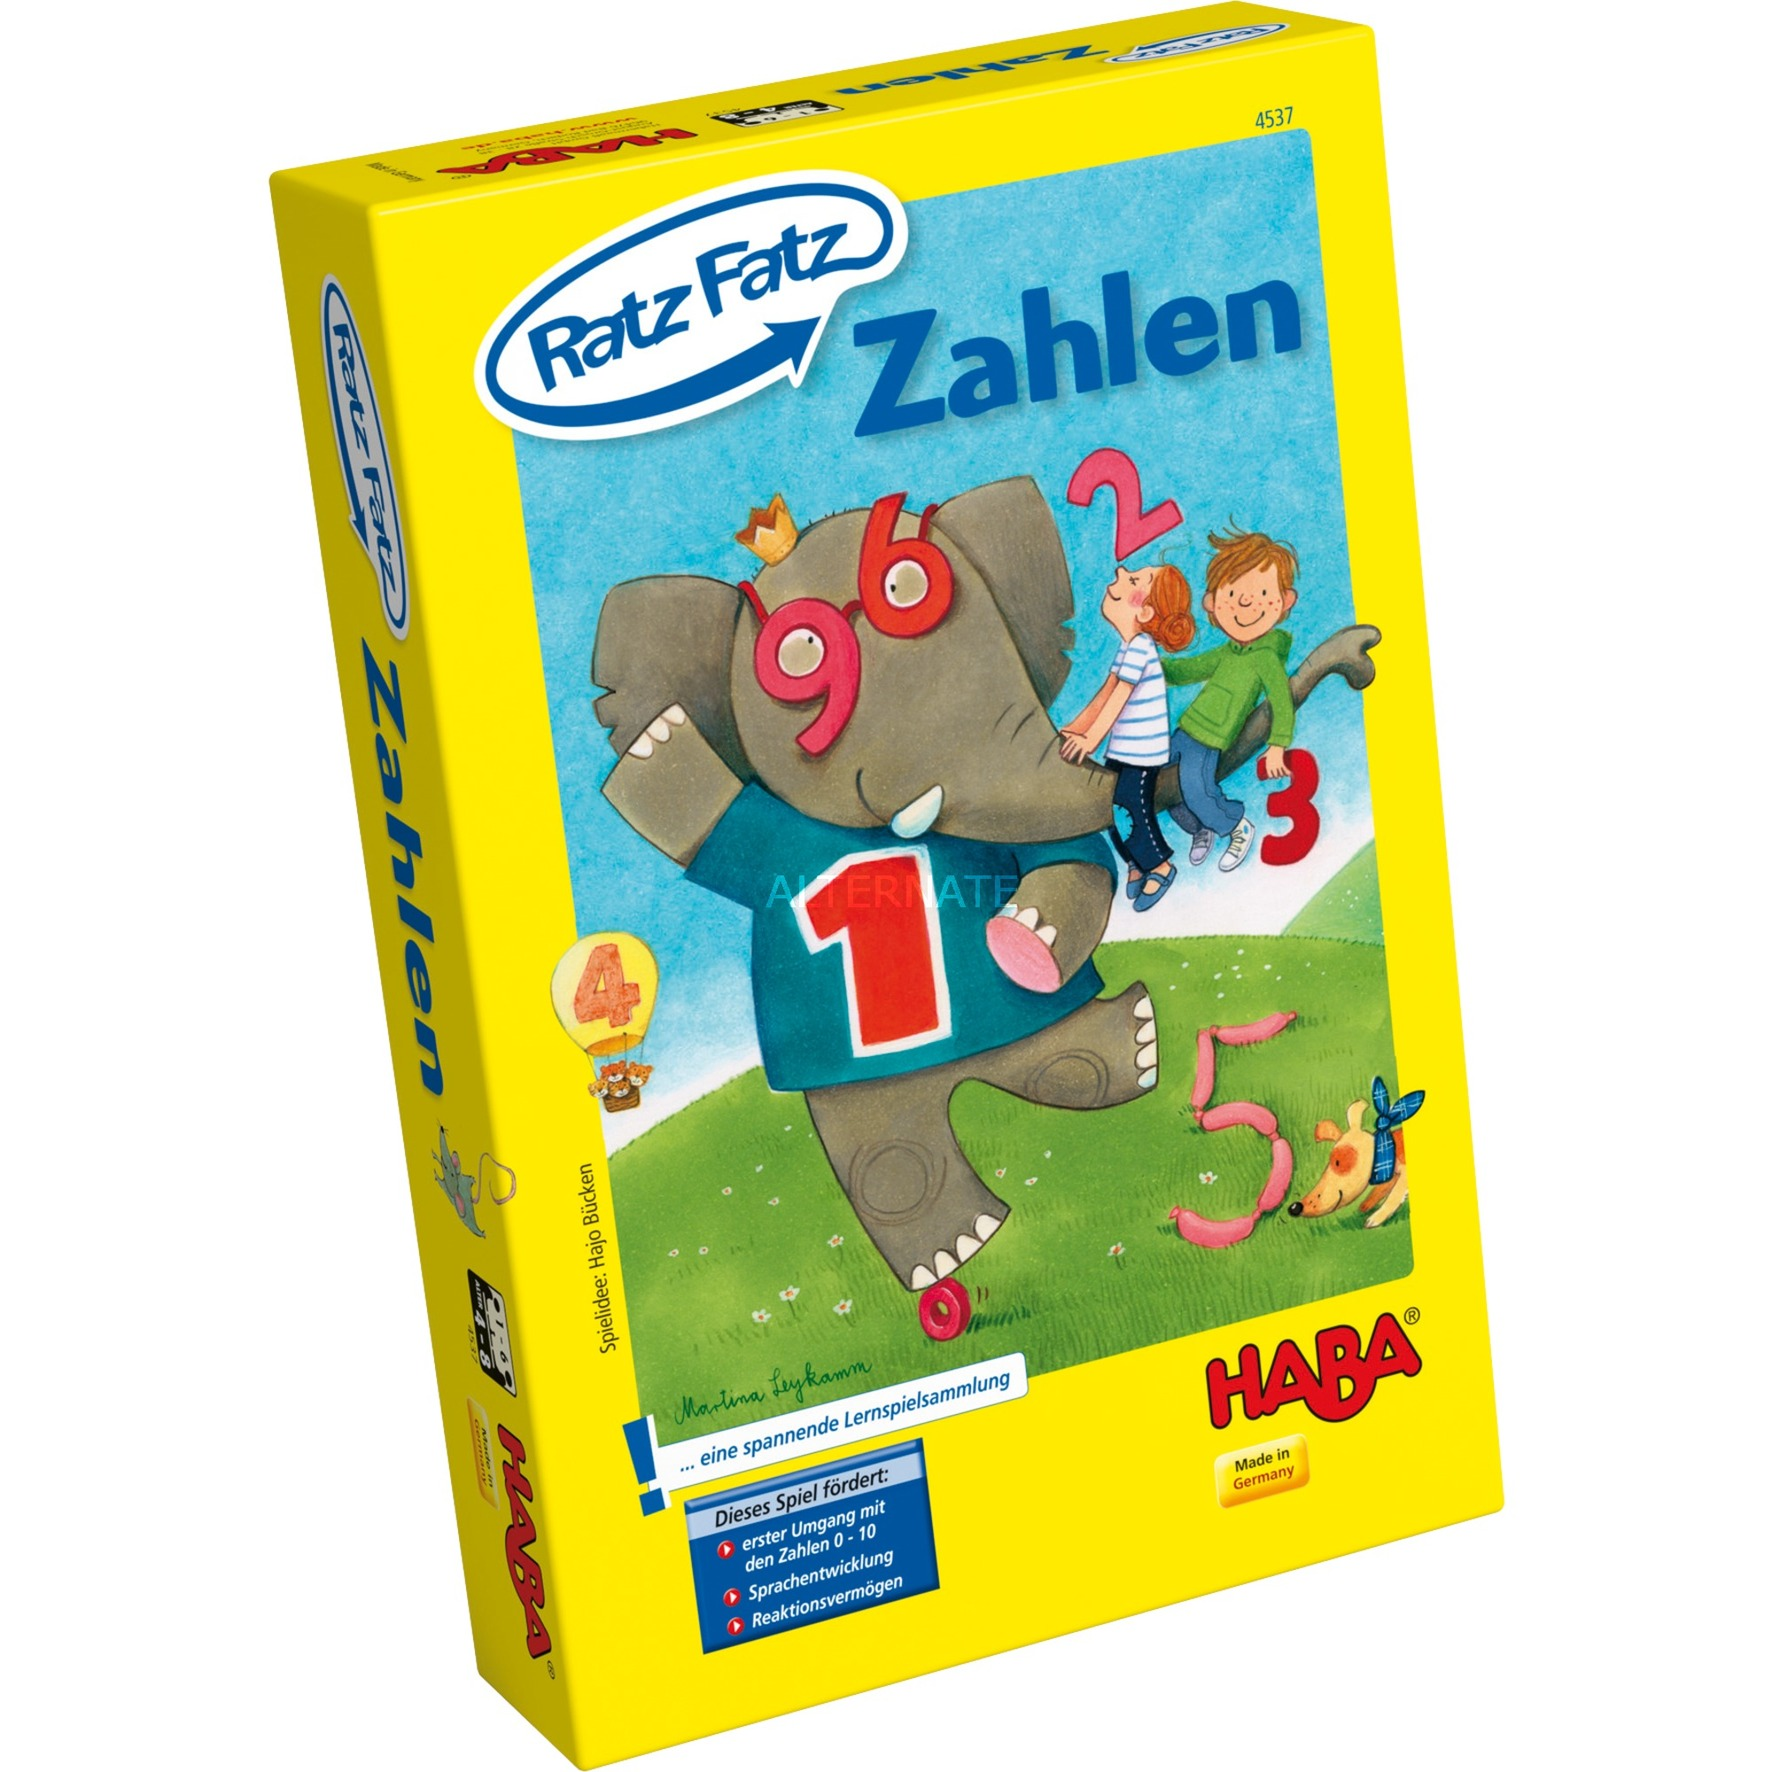 004537 Learning card game, Juego educativo